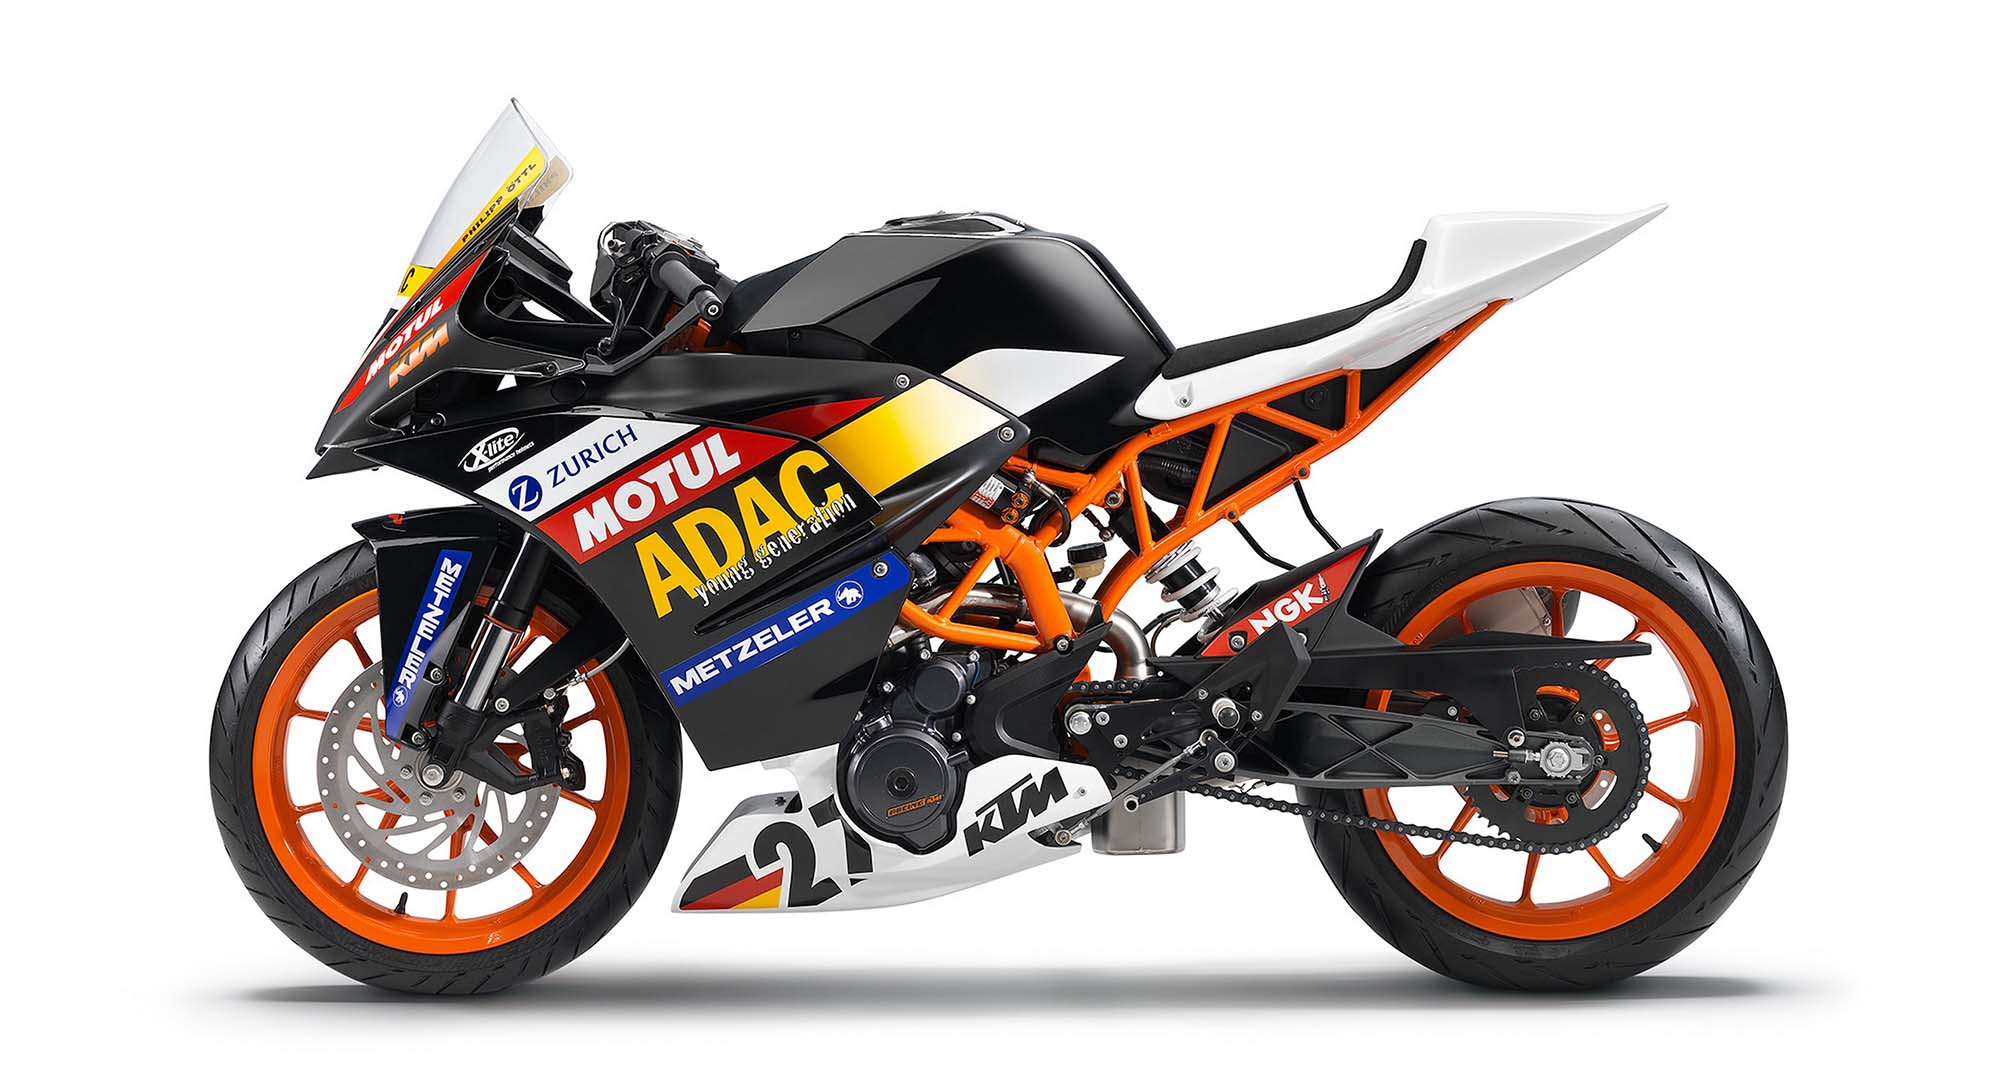 2014 ktm rc390 cup - a glimpse of what's to come - asphalt & rubber